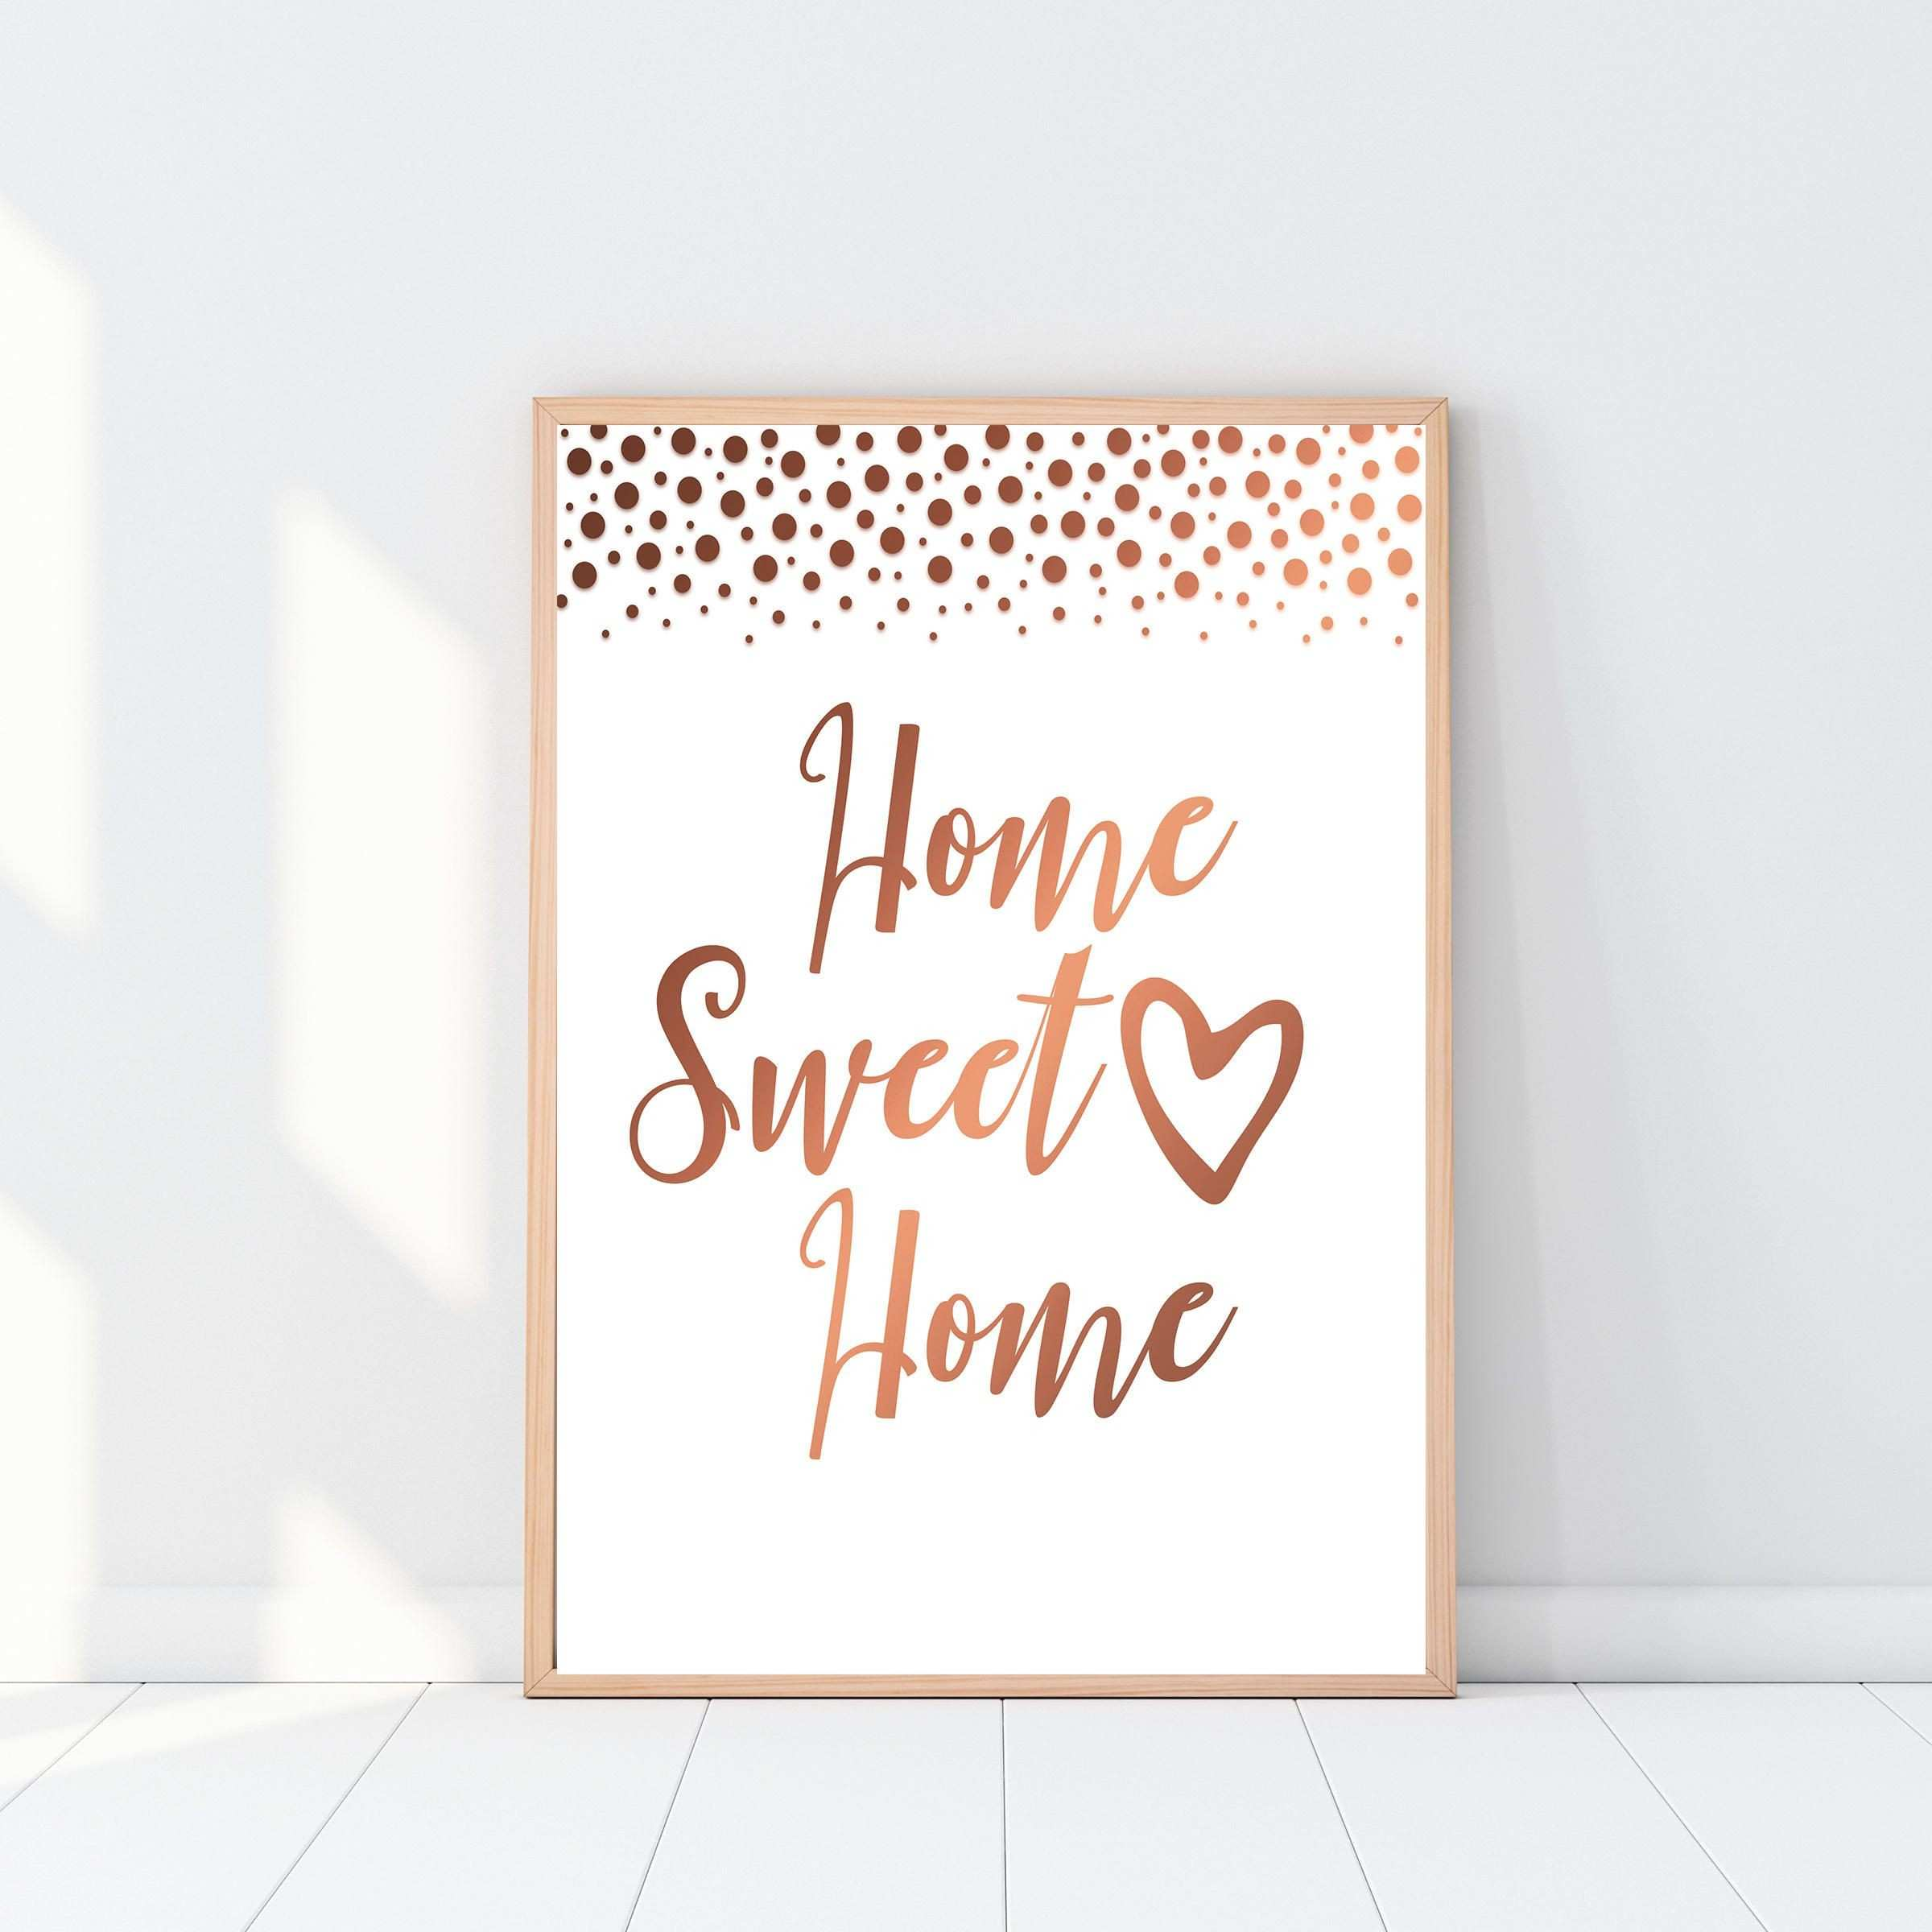 Excited to share the latest addition to my etsy shop Home Sweet